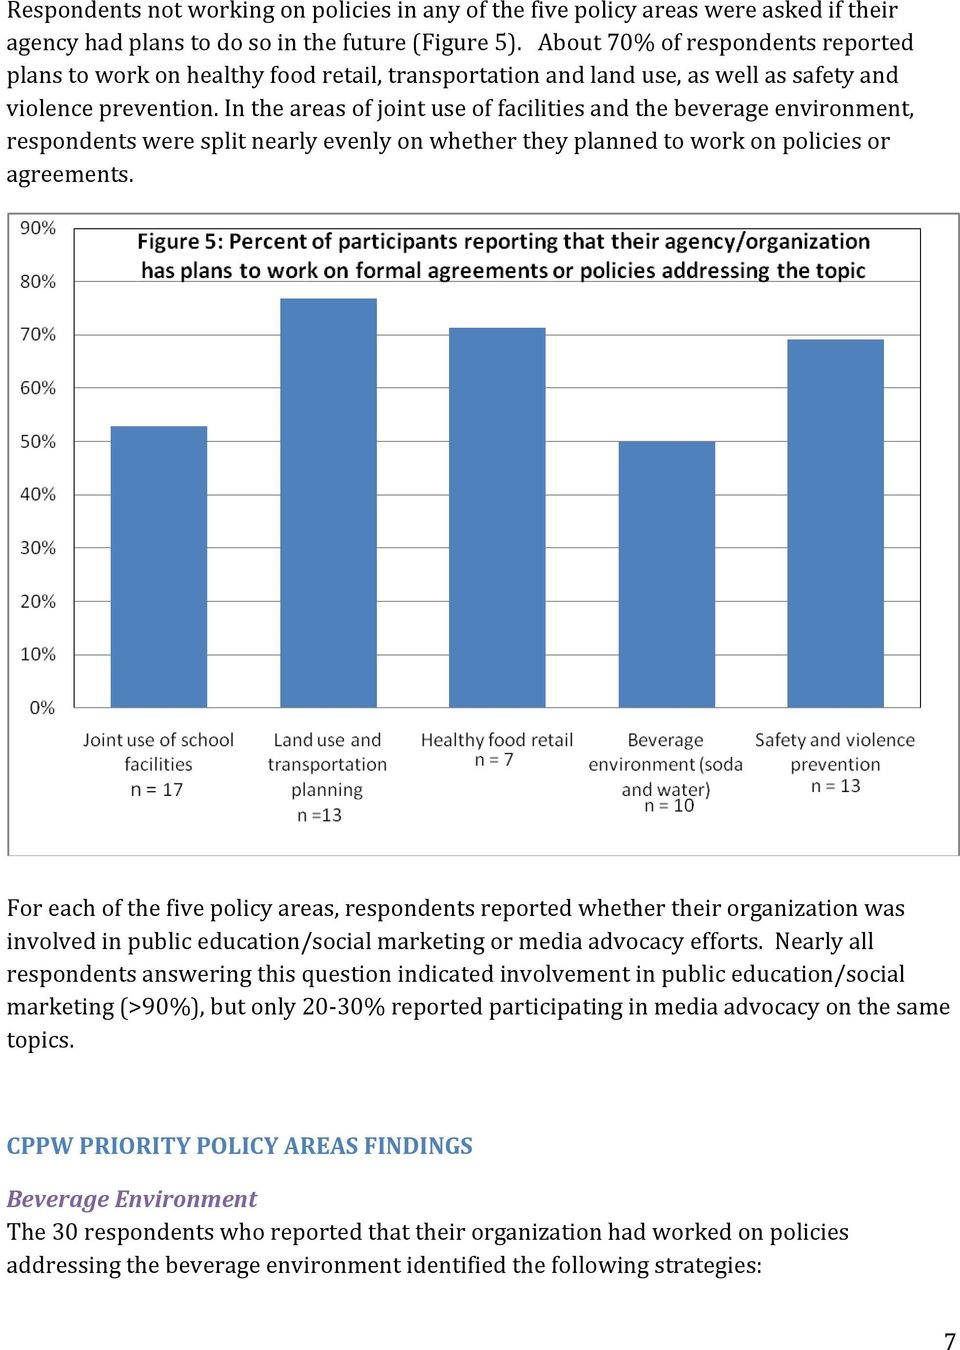 In the areas of joint use of facilities and the beverage environment, respondents were split nearly evenly on whether they planned to work on policies or agreements.